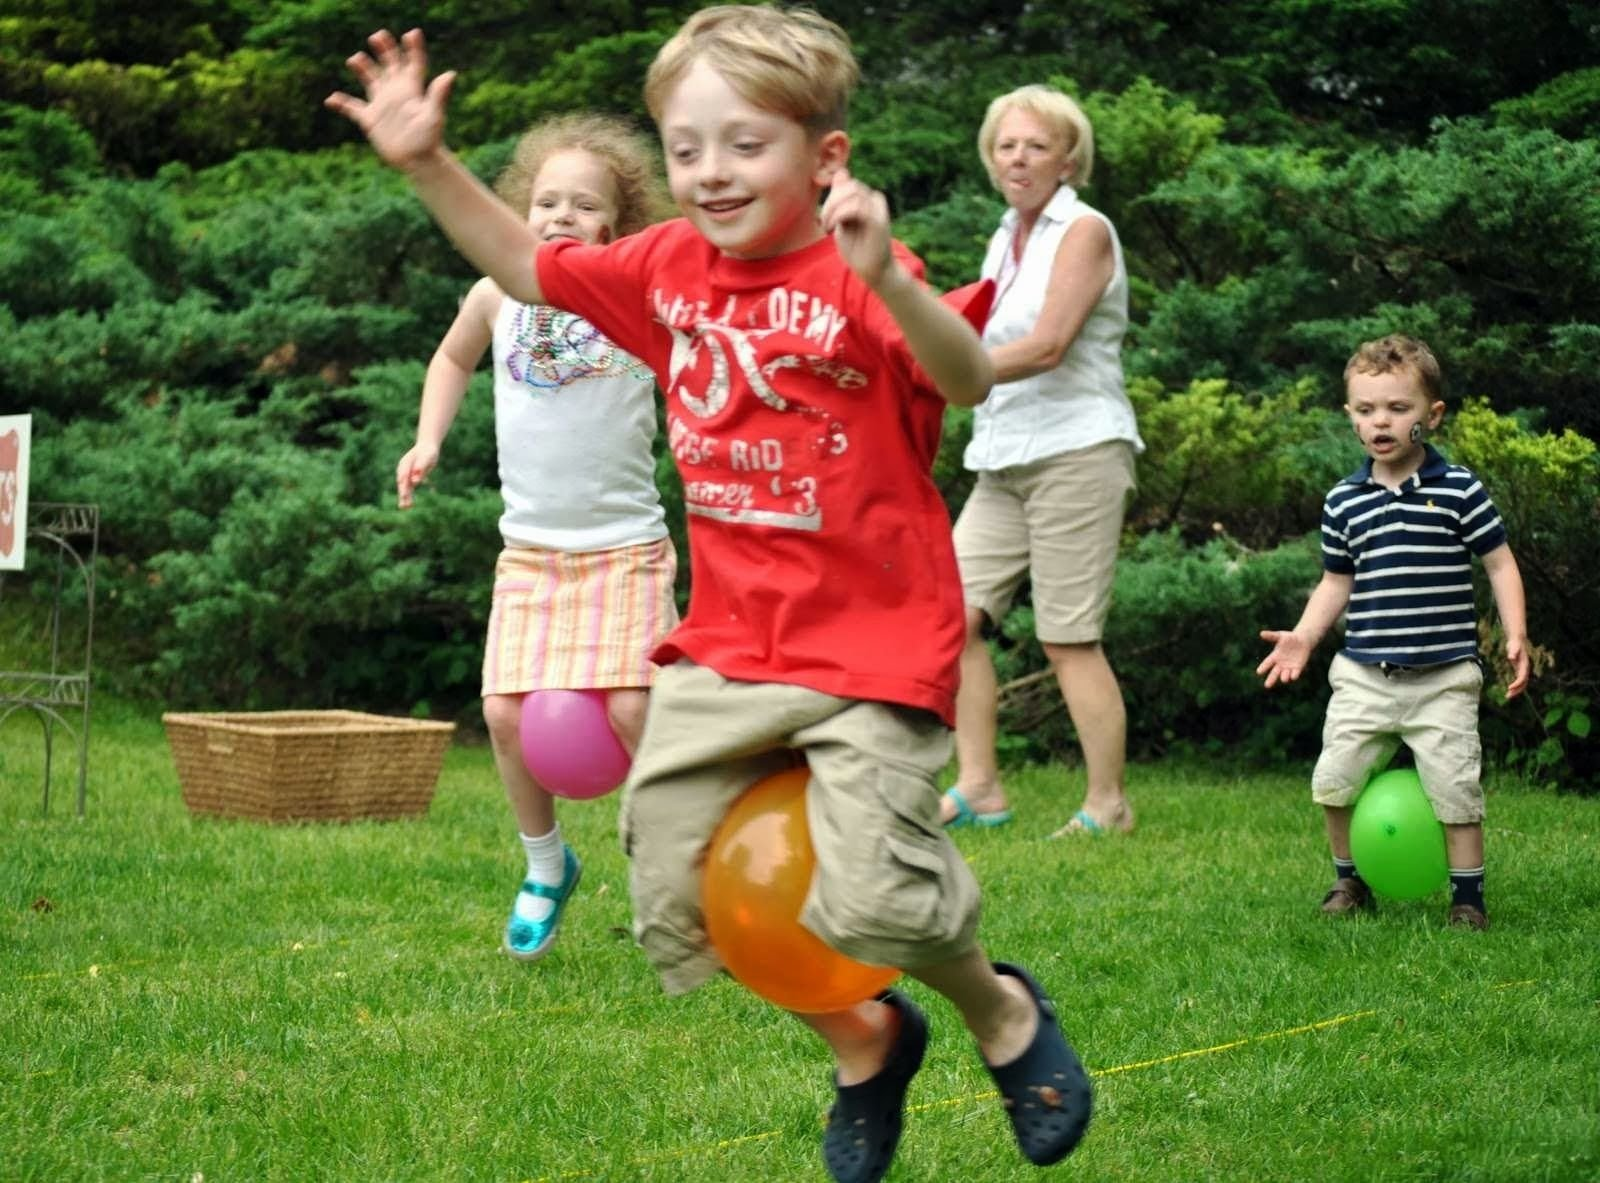 10 Beautiful Relay Race Ideas For Kids kangaroo hop relay race vbs game childrens ministry pinterest 2020